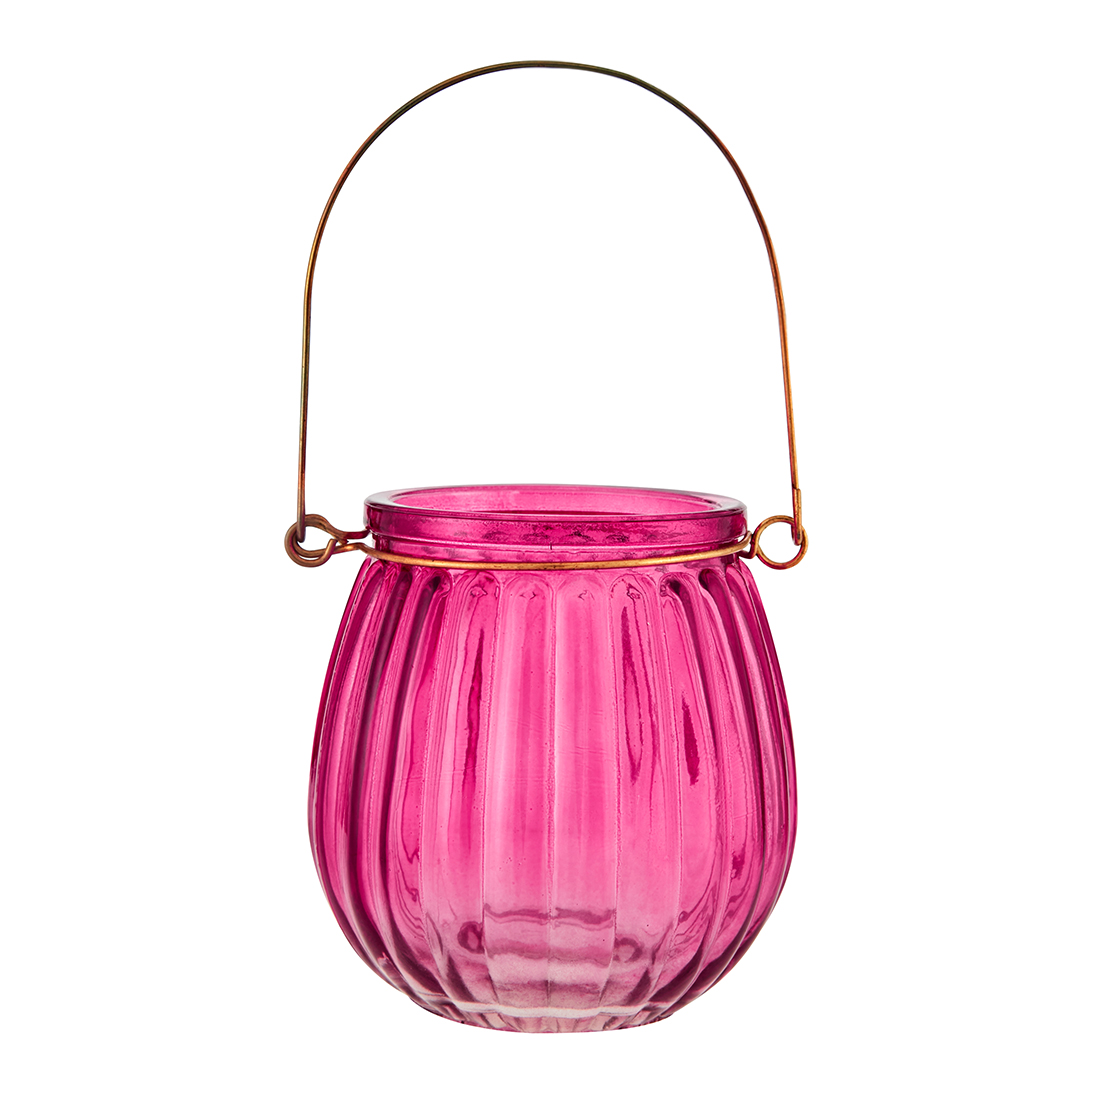 Marvela Colored Glass Candle Holder Pink Glass Candle Holders in Pink Colour by Living Essence